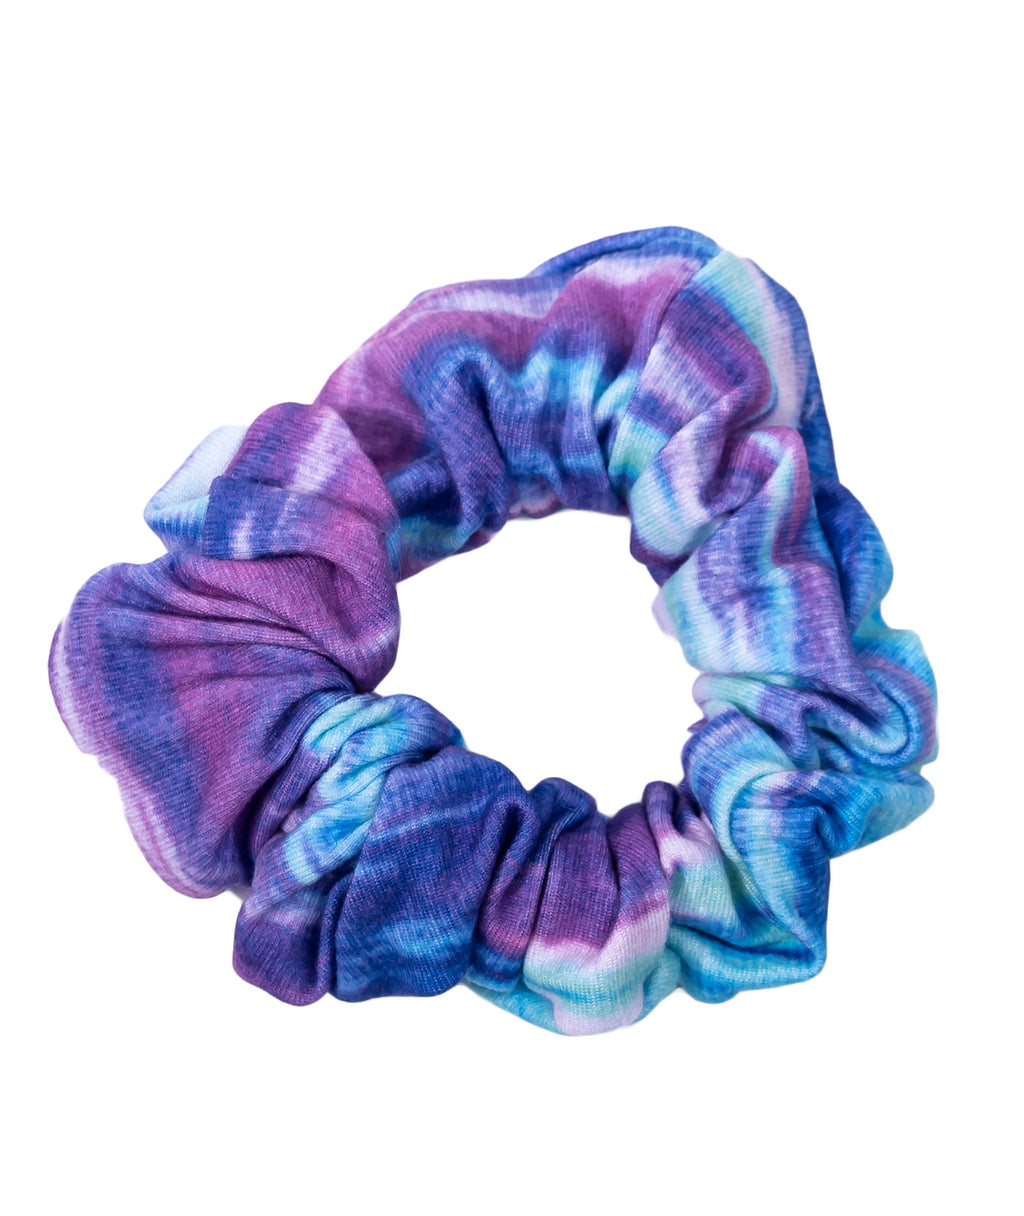 Penelope Wildberry Bleach Tie-Dye Scrunchie